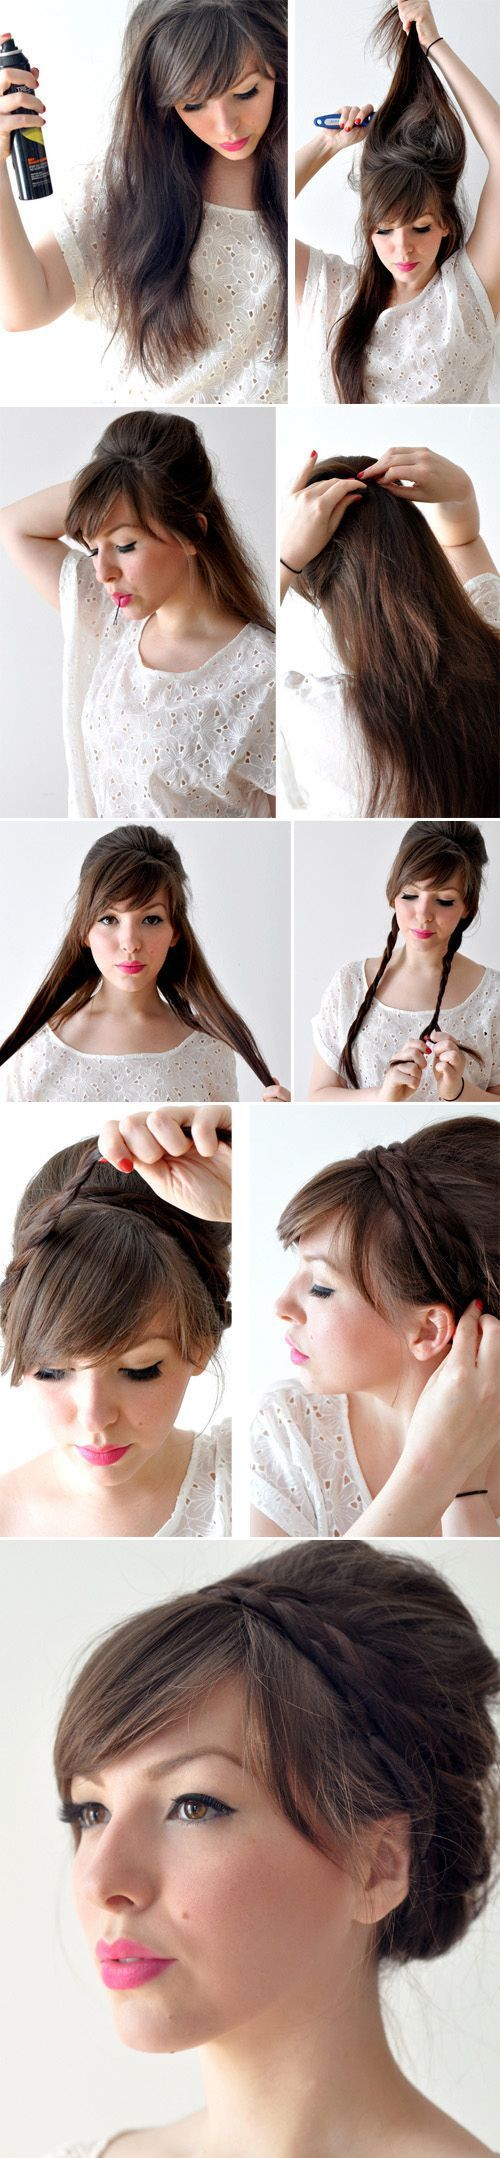 DIY bun and braid bouffant